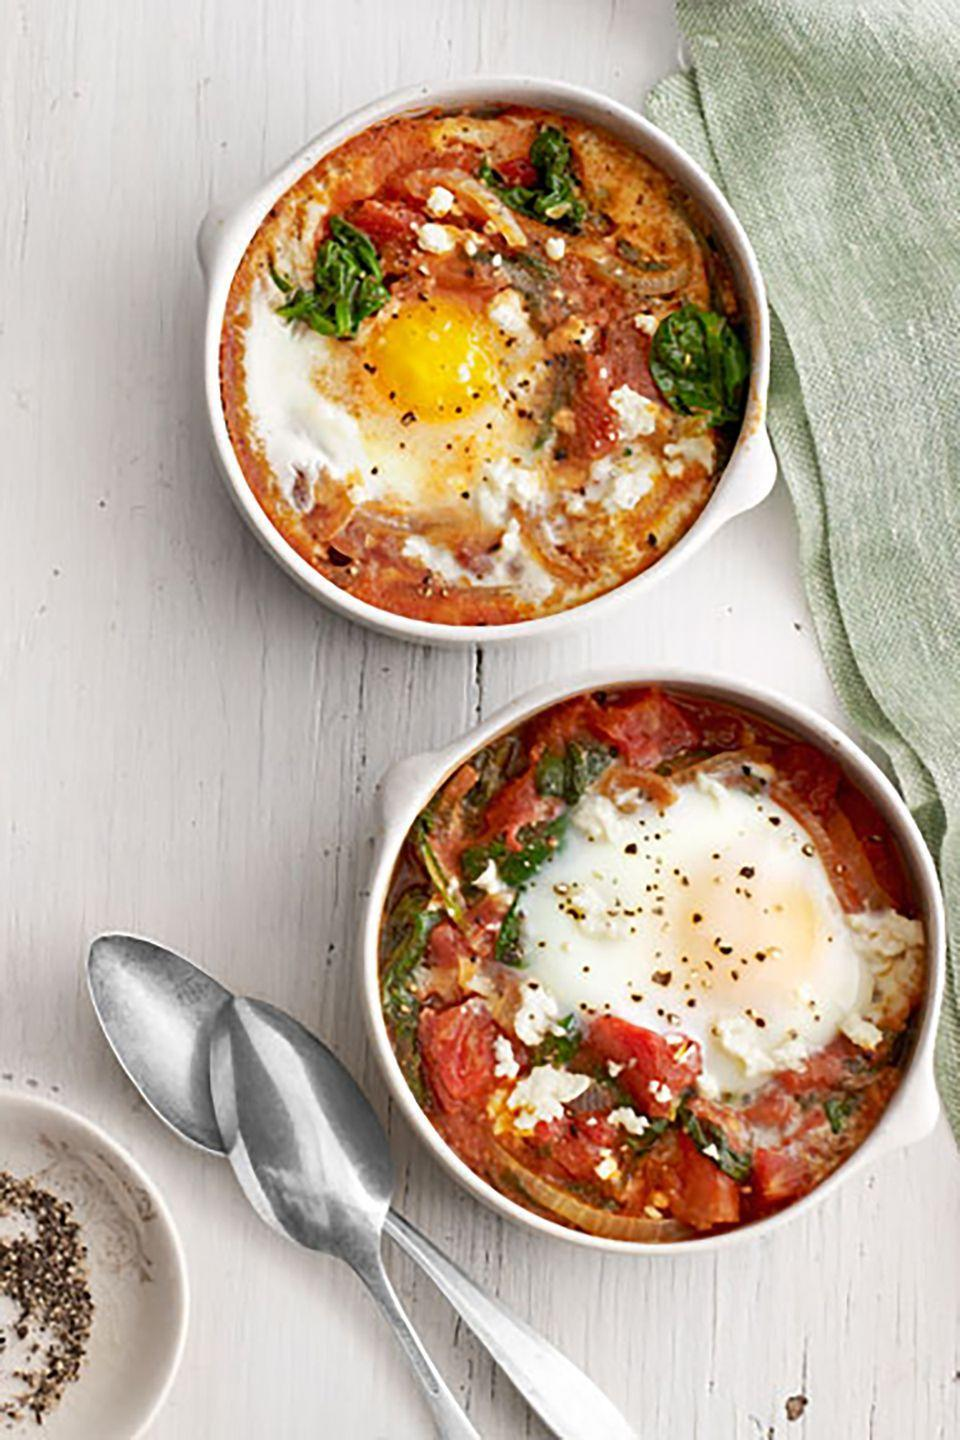 """<p>Nothing in the house but eggs, some canned tomatoes, and maybe a little cheese? Break out the frozen spinach and whip this up.</p><p><strong><a href=""""https://www.countryliving.com/food-drinks/recipes/a4148/baked-eggs-spinach-tomato-recipe-clv0313/"""" rel=""""nofollow noopener"""" target=""""_blank"""" data-ylk=""""slk:Get the recipe"""" class=""""link rapid-noclick-resp"""">Get the recipe</a>.</strong></p><p><strong><a class=""""link rapid-noclick-resp"""" href=""""https://www.amazon.com/Sweejar-Ceramic-Souffle-Ramekins-Custard/dp/B07TZQYMMH/?tag=syn-yahoo-20&ascsubtag=%5Bartid%7C10050.g.32969162%5Bsrc%7Cyahoo-us"""" rel=""""nofollow noopener"""" target=""""_blank"""" data-ylk=""""slk:SHOP RAMEKINS"""">SHOP RAMEKINS</a><br></strong></p>"""